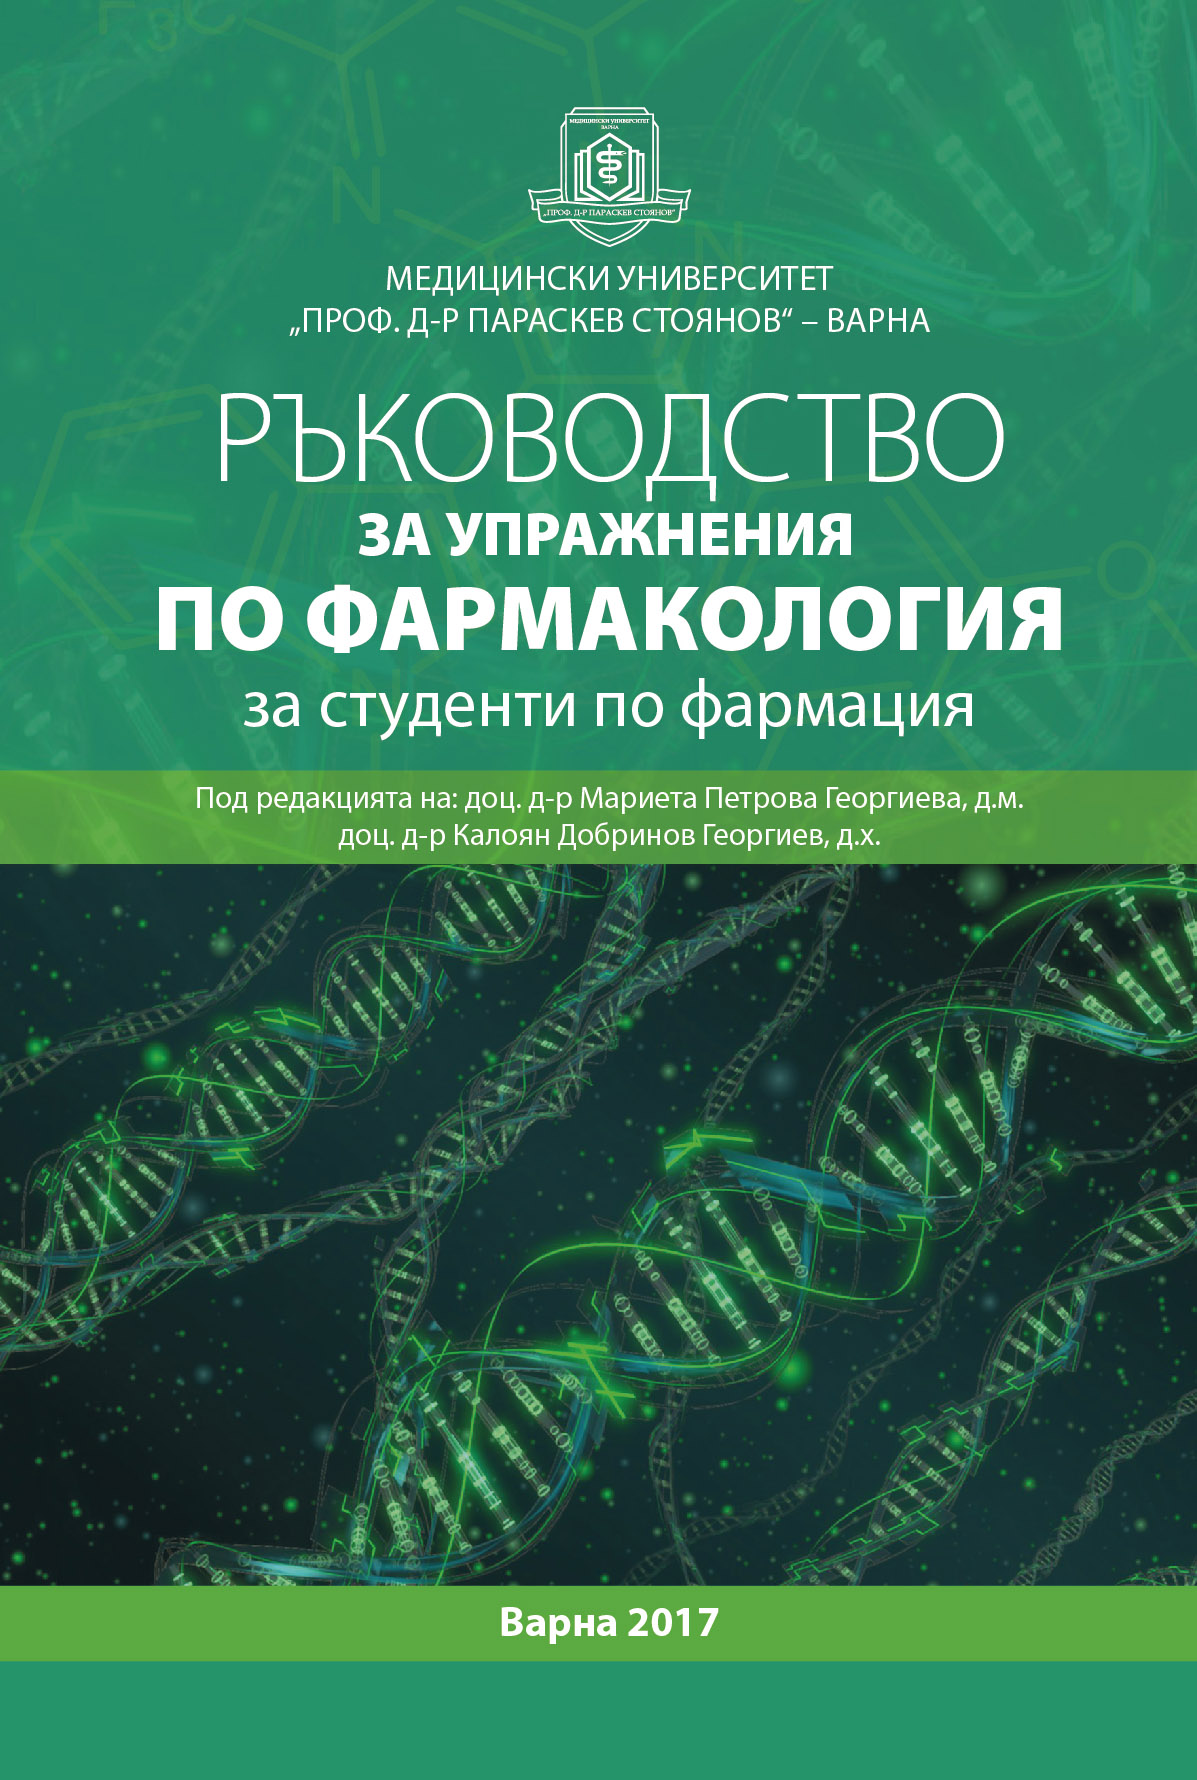 Varna Medical University Press Published the First Issue of a Handbook Aimed at Pharmacology Students